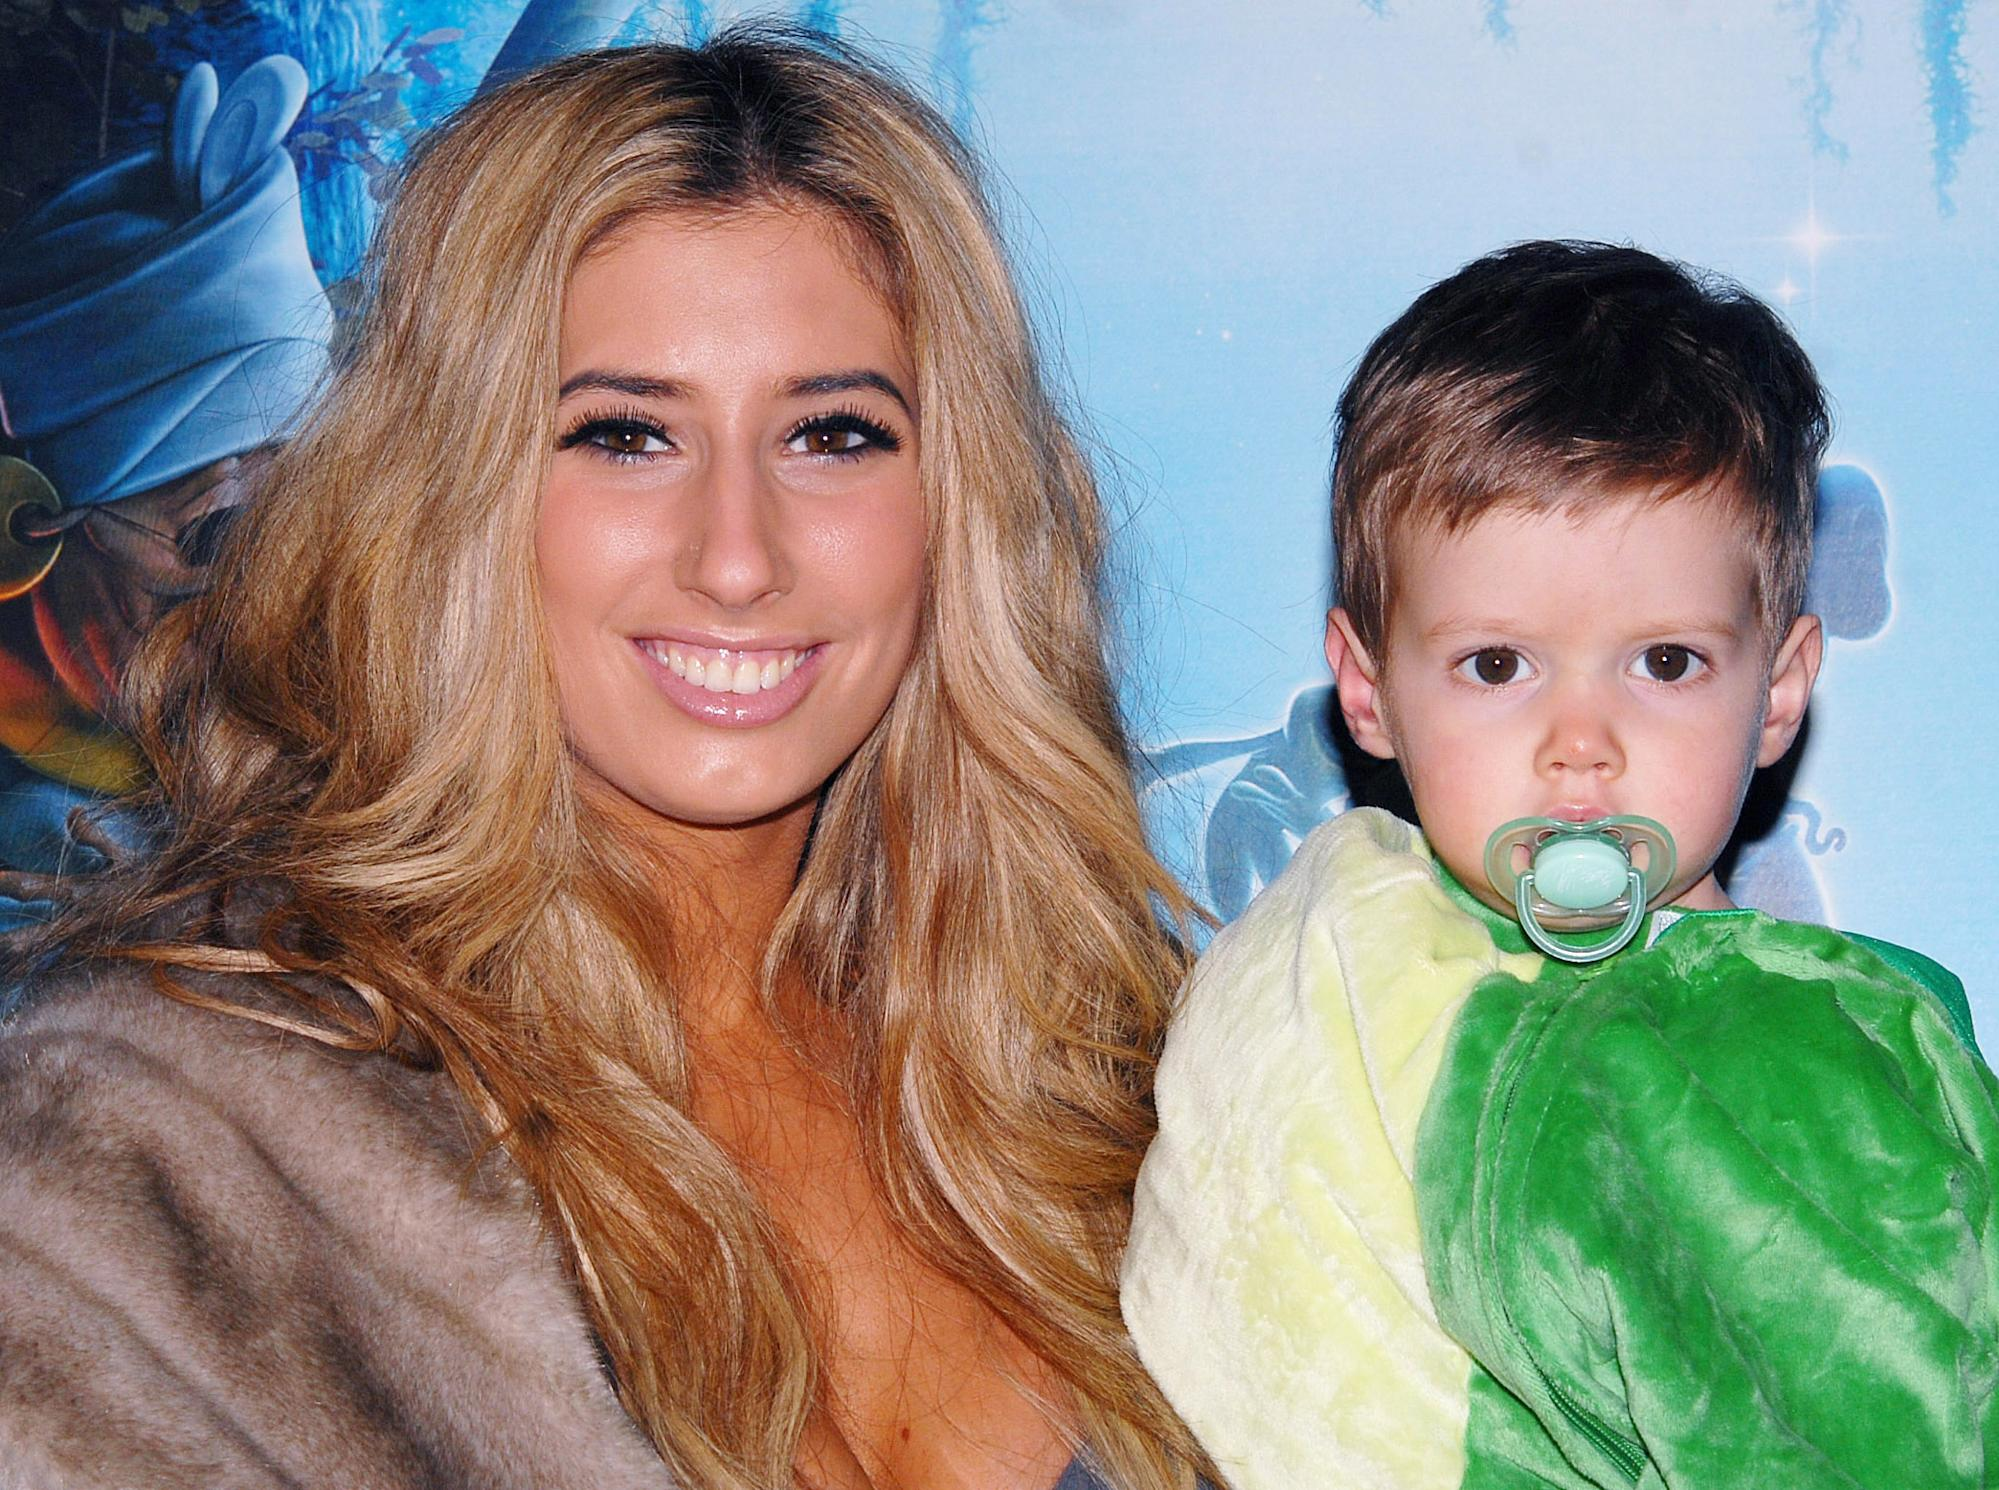 Stacey Solomon turned to organising after feeling 'out of control' as a teenage mother